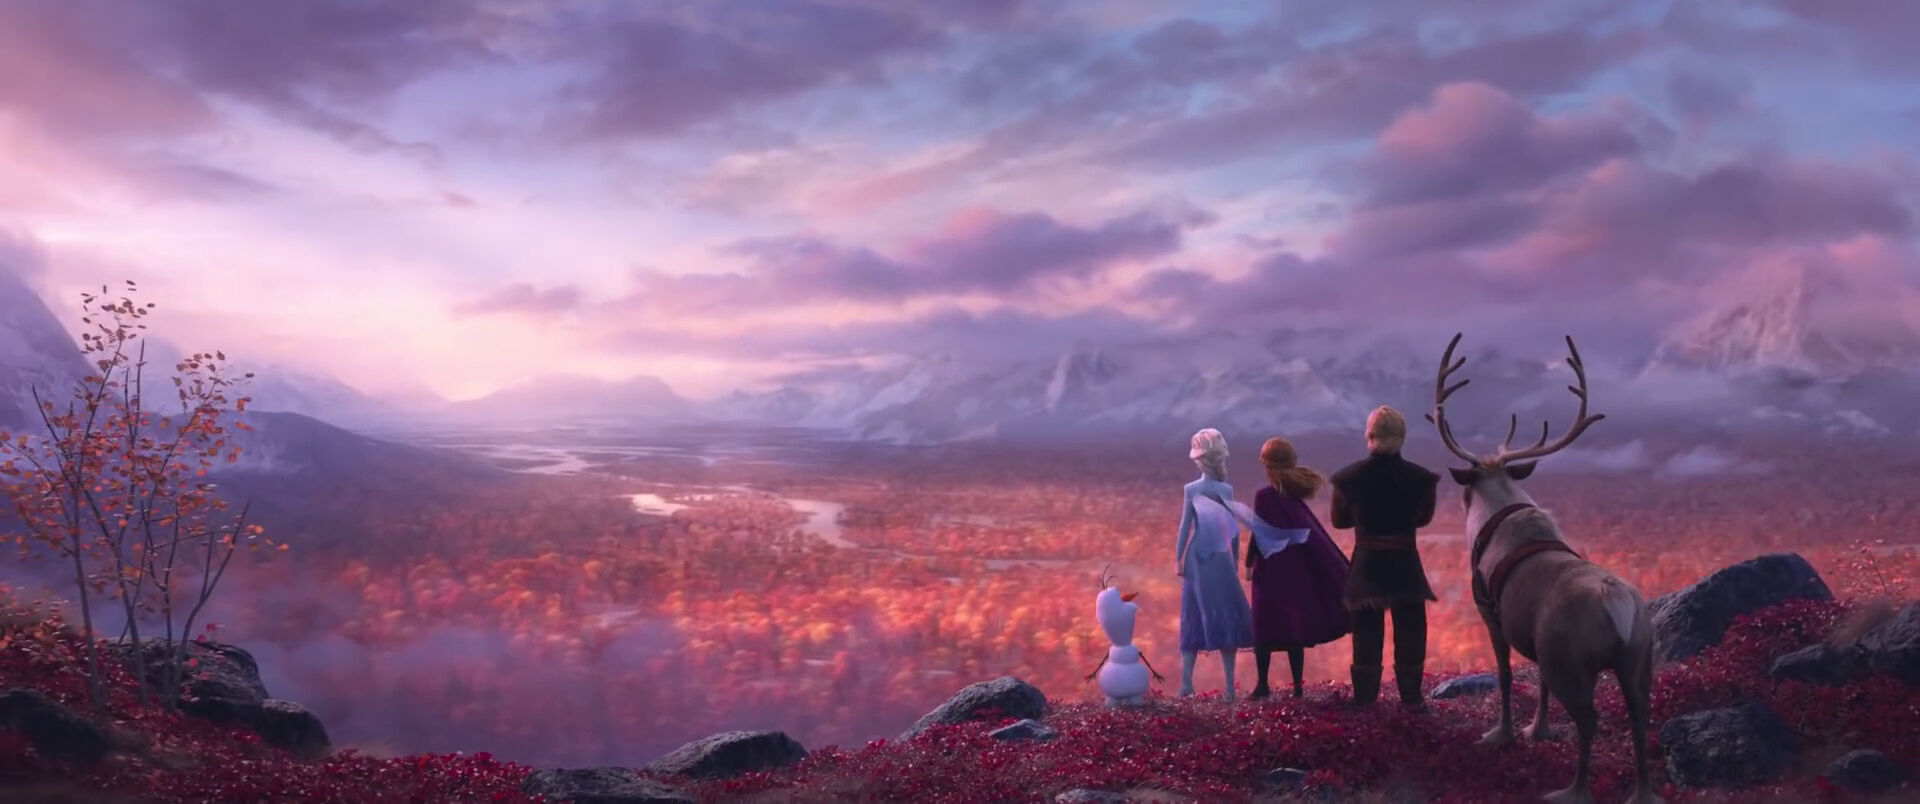 The Frozen 2 teaser is here and we just can'tlet it go